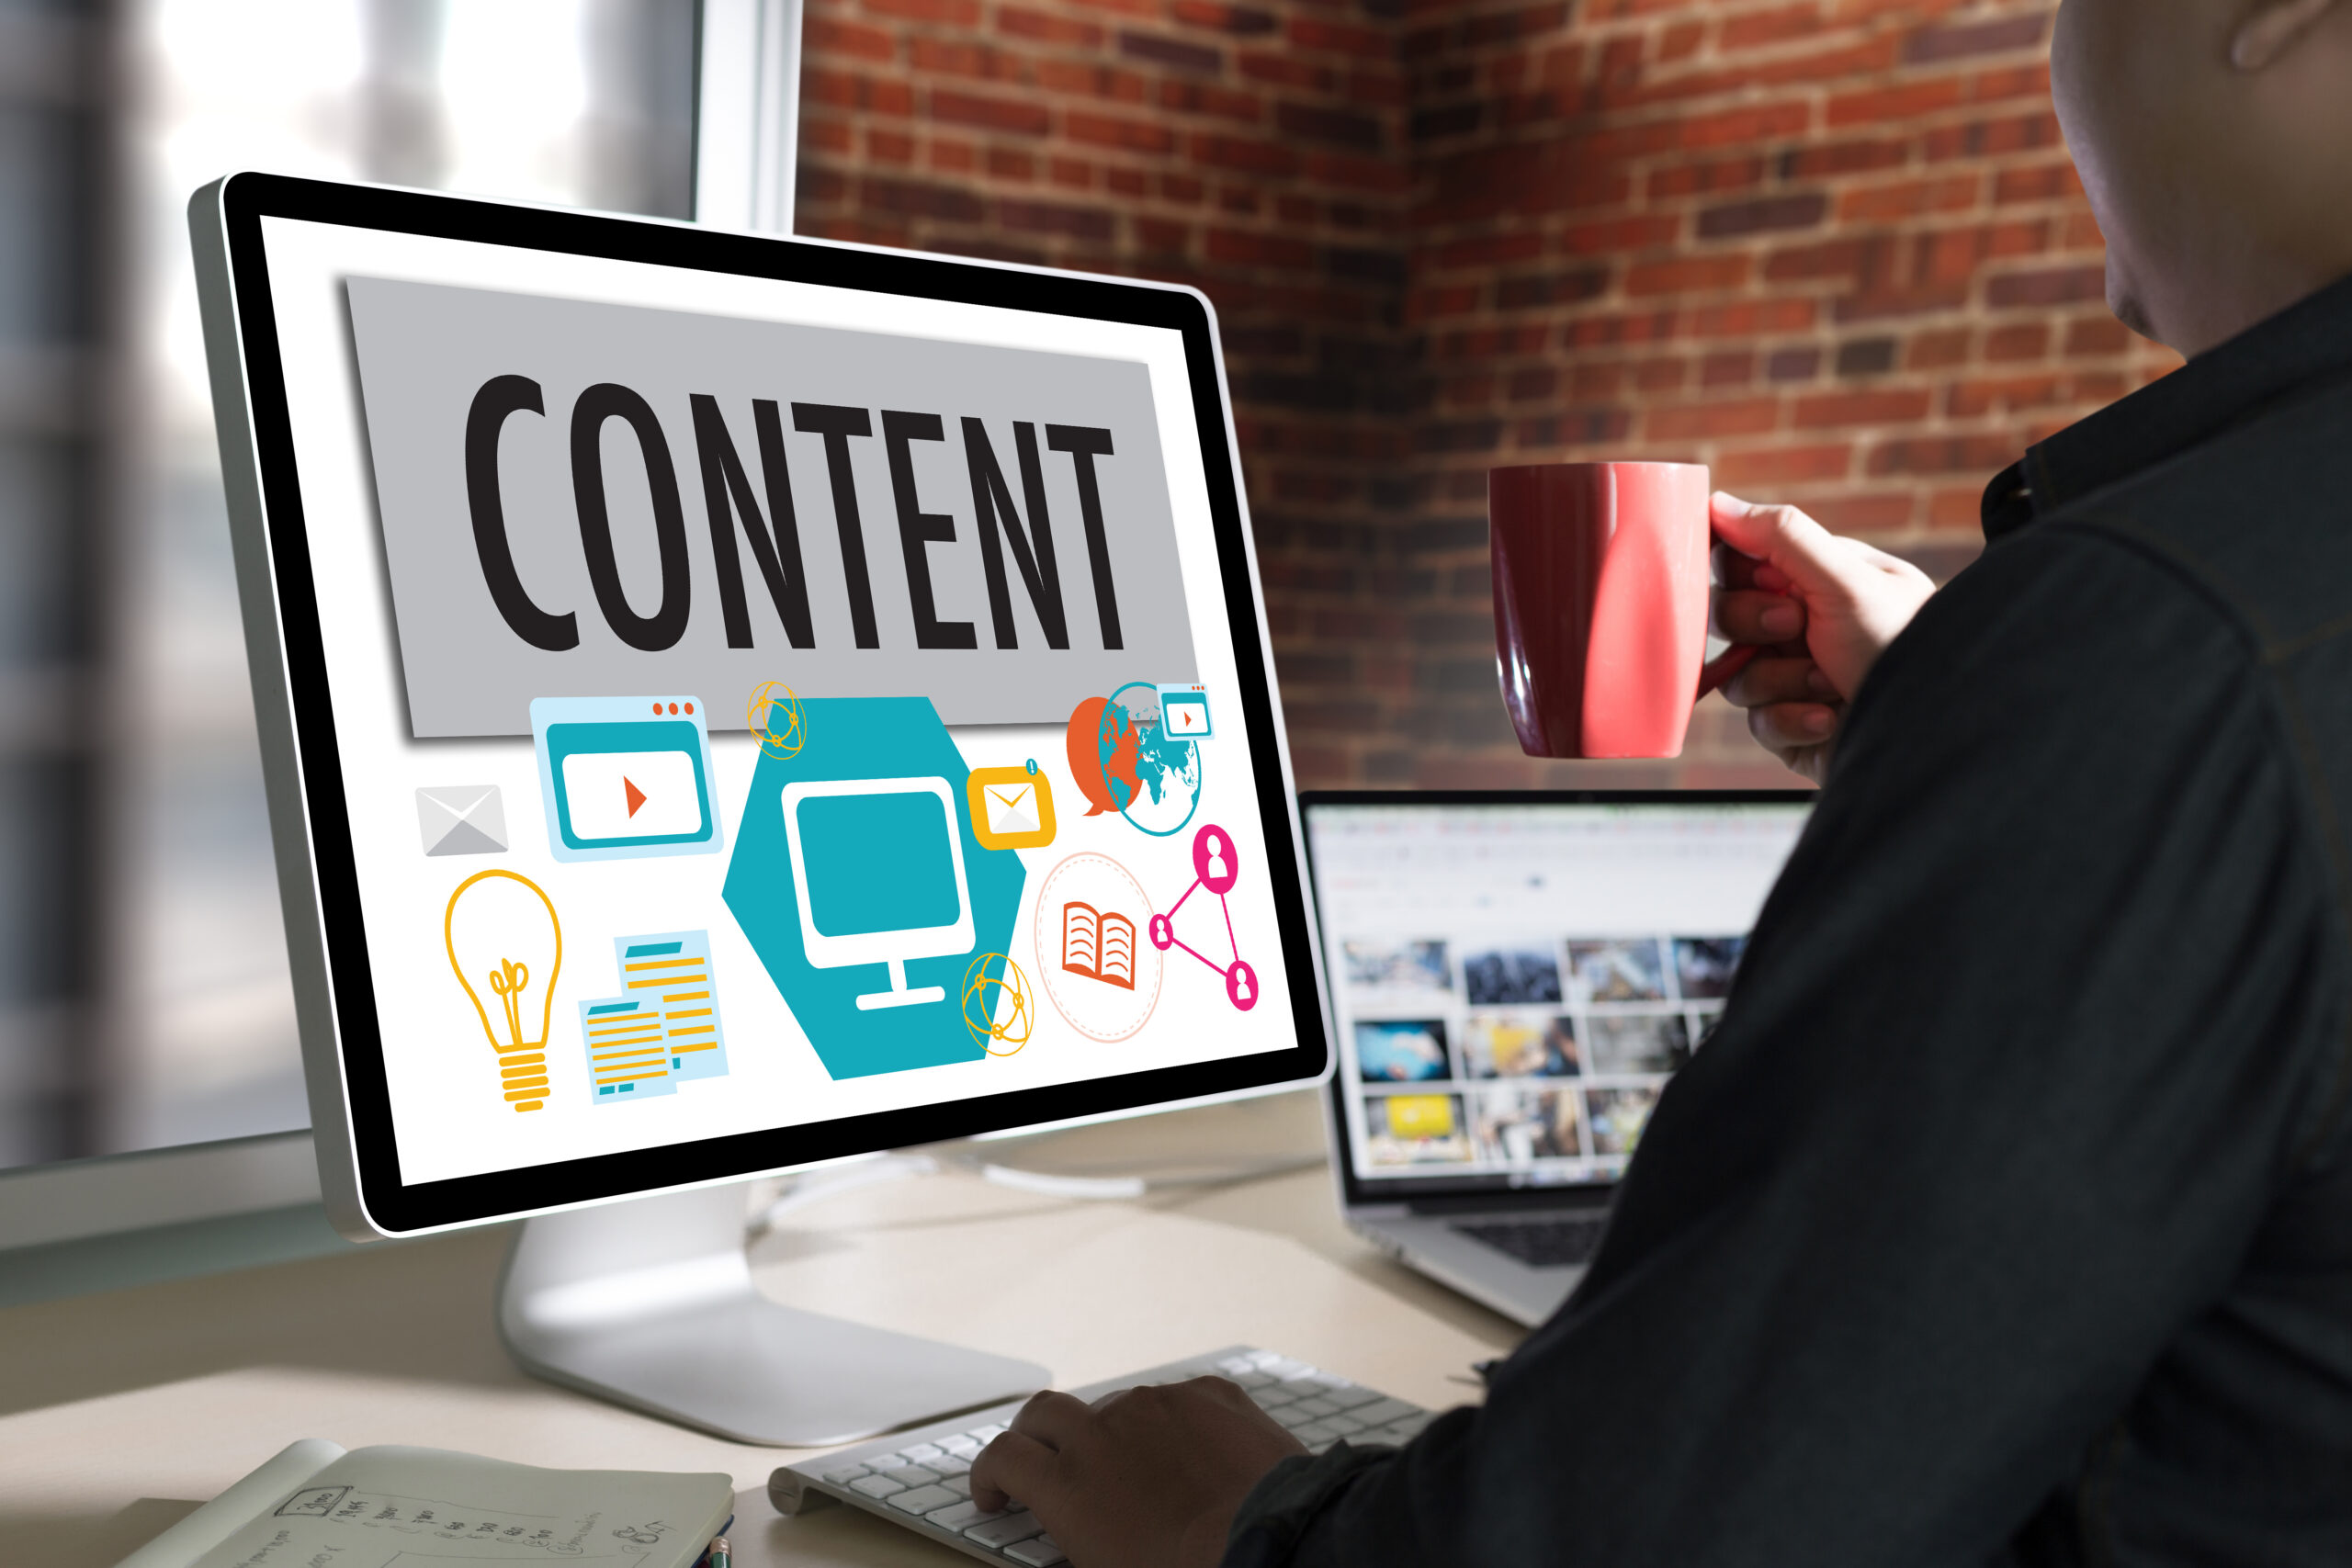 SEO Content Writing Services in Surrey, Kent and the South East